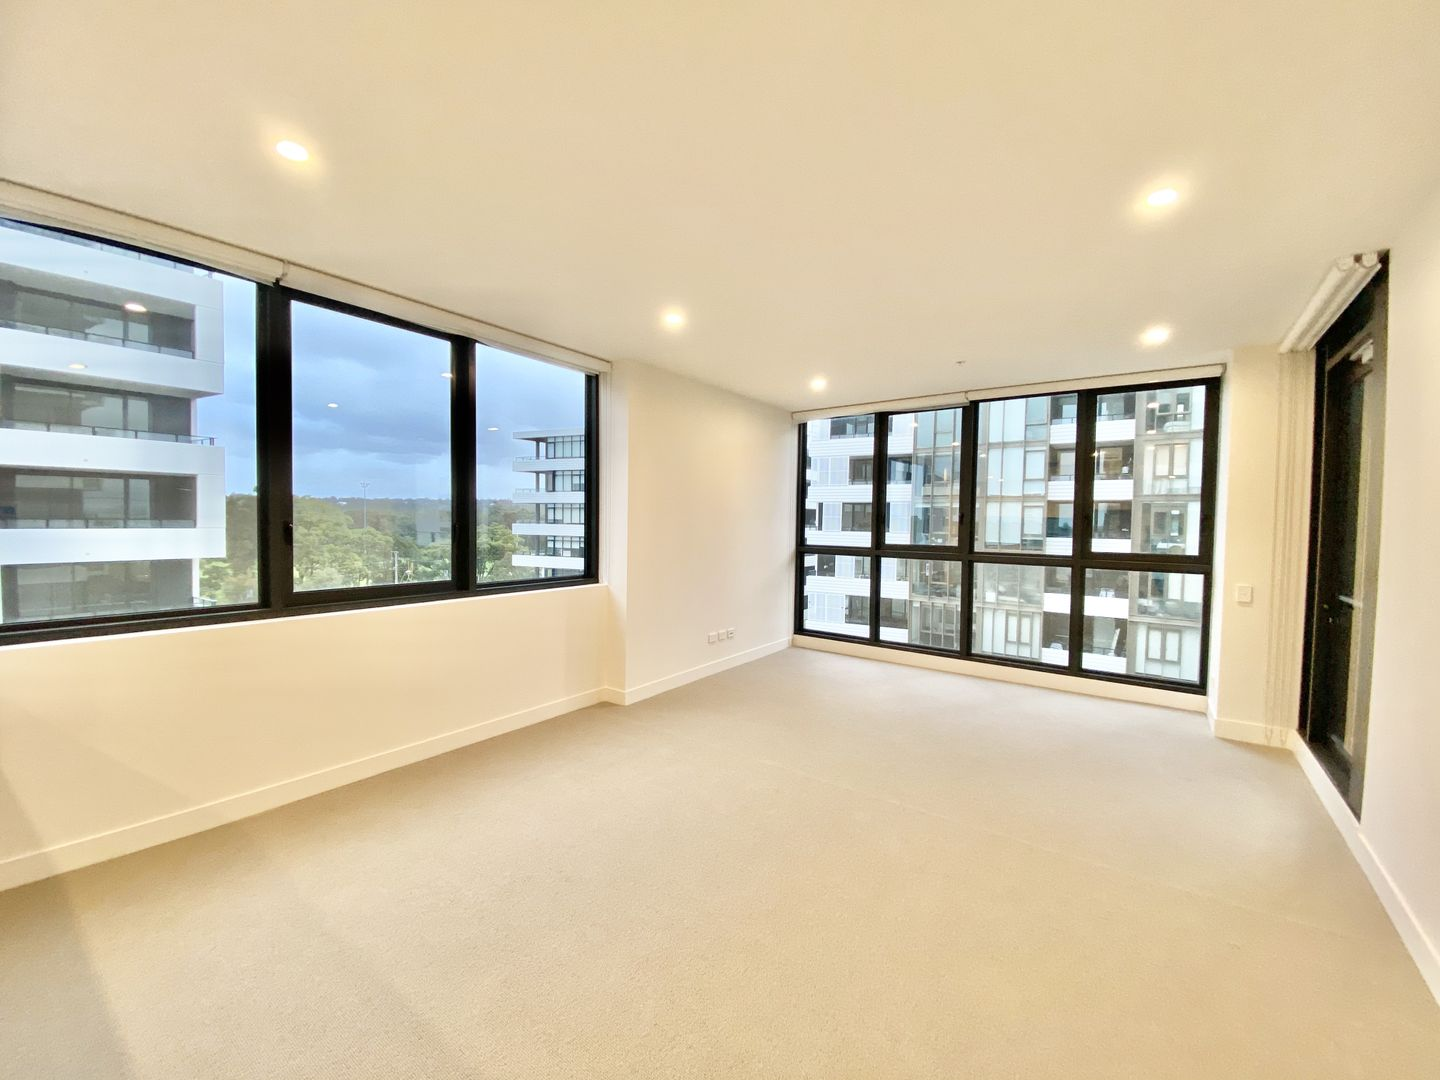 402/471 Captain Cook Drive, Woolooware NSW 2230, Image 1